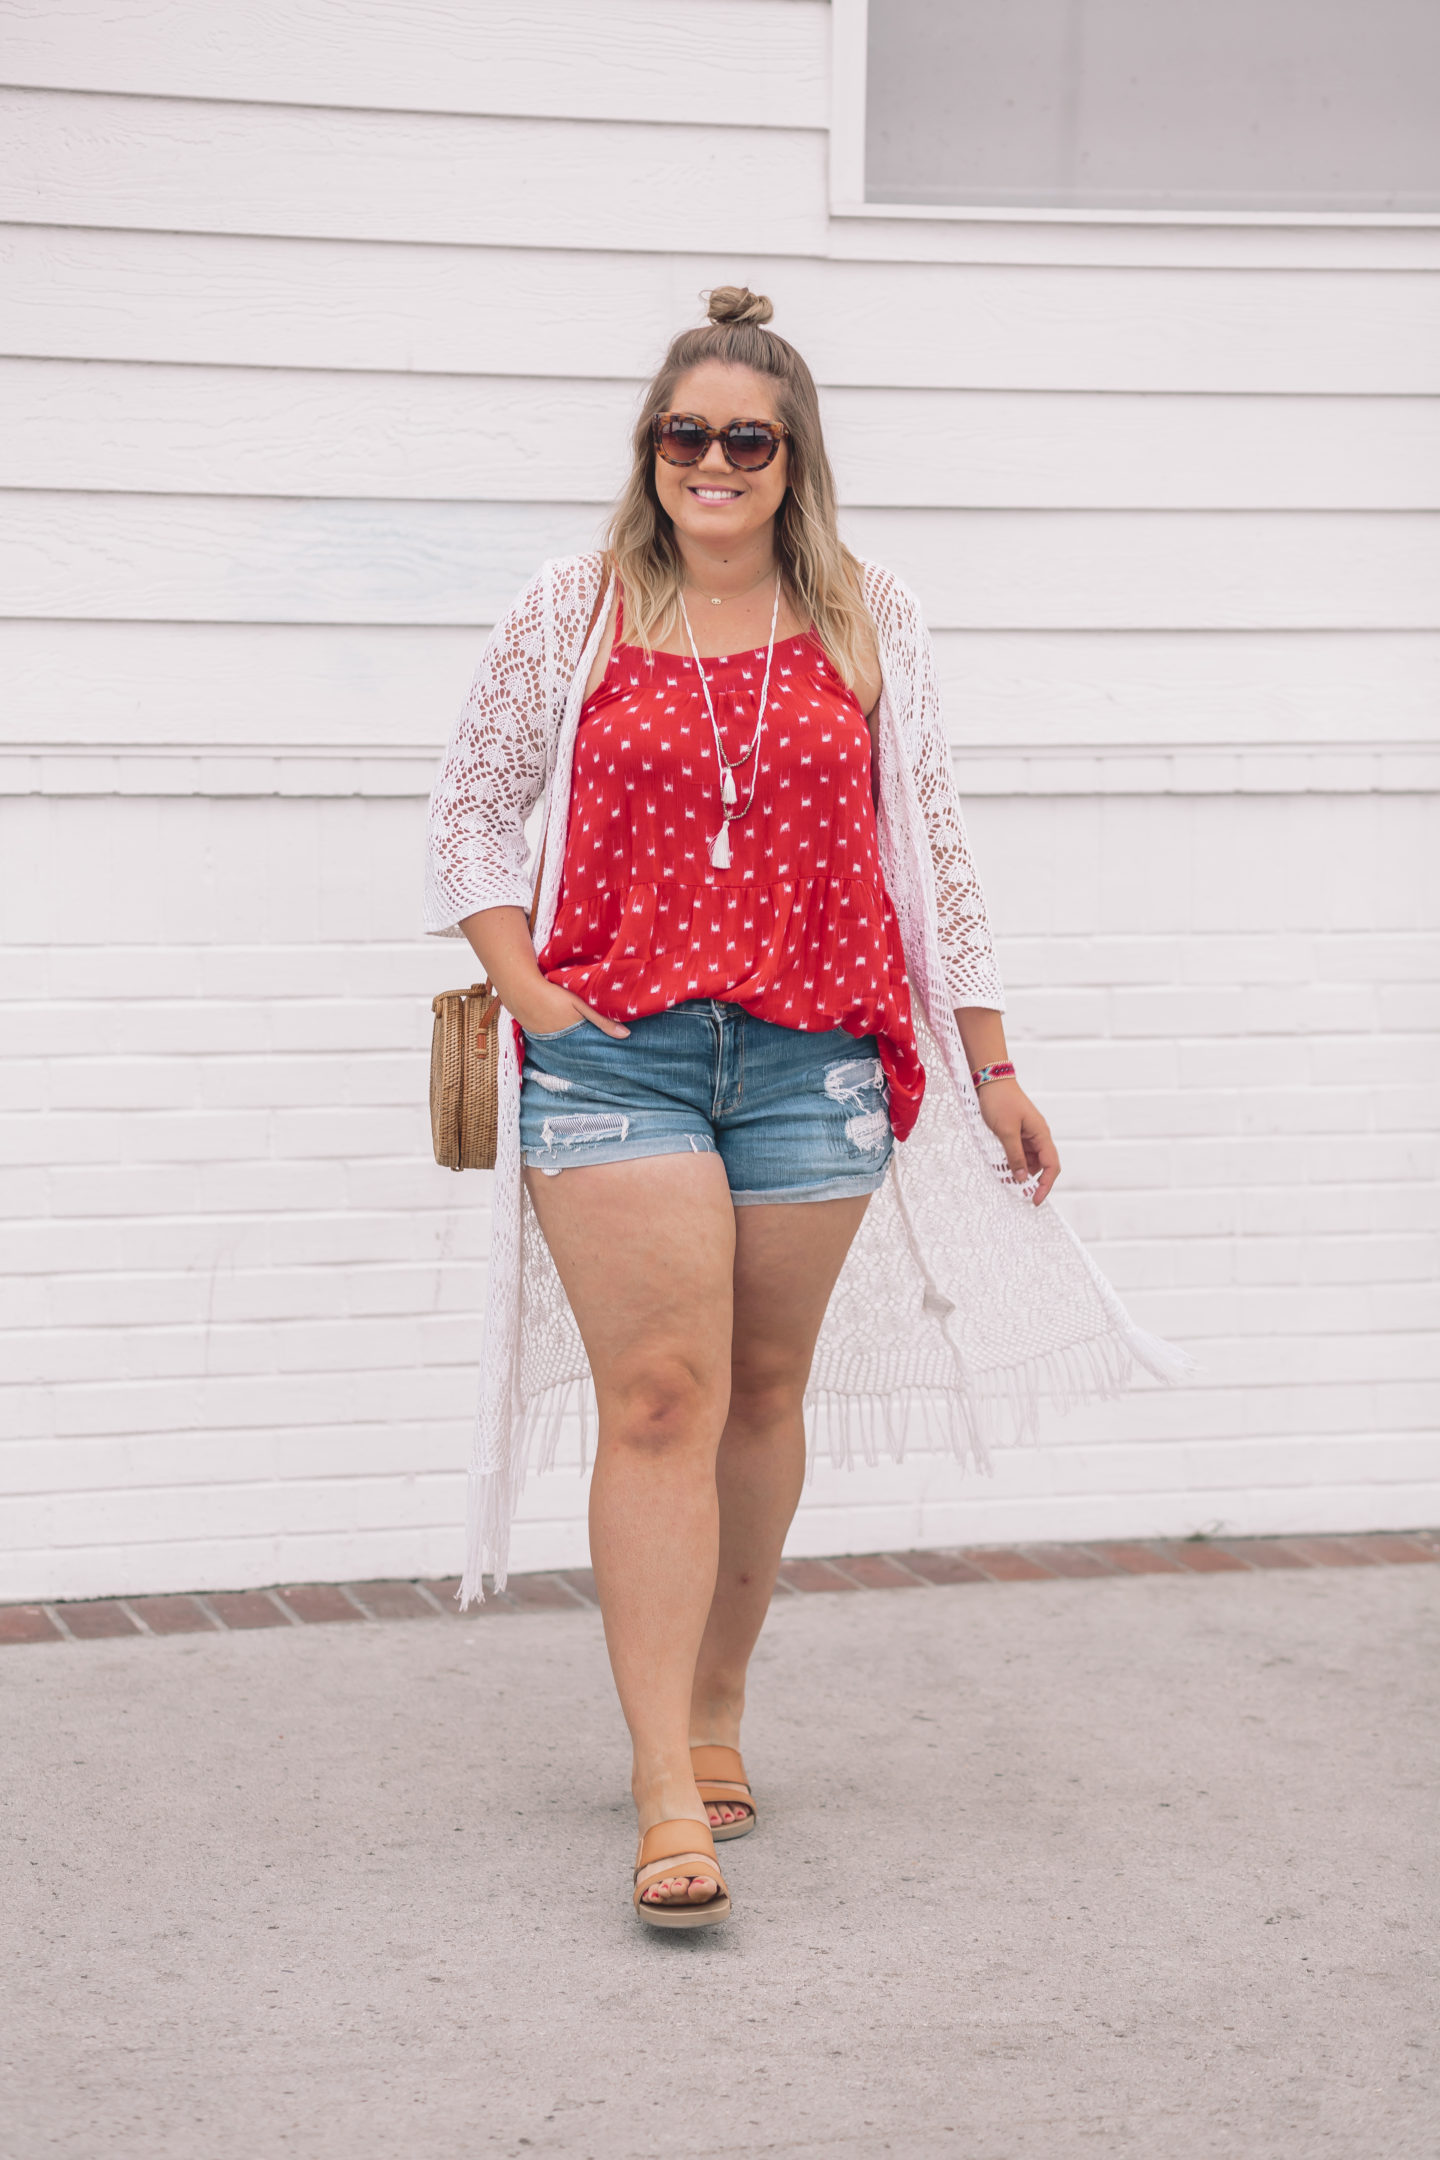 easy 4th of July outfit at Balboa Fun Zone